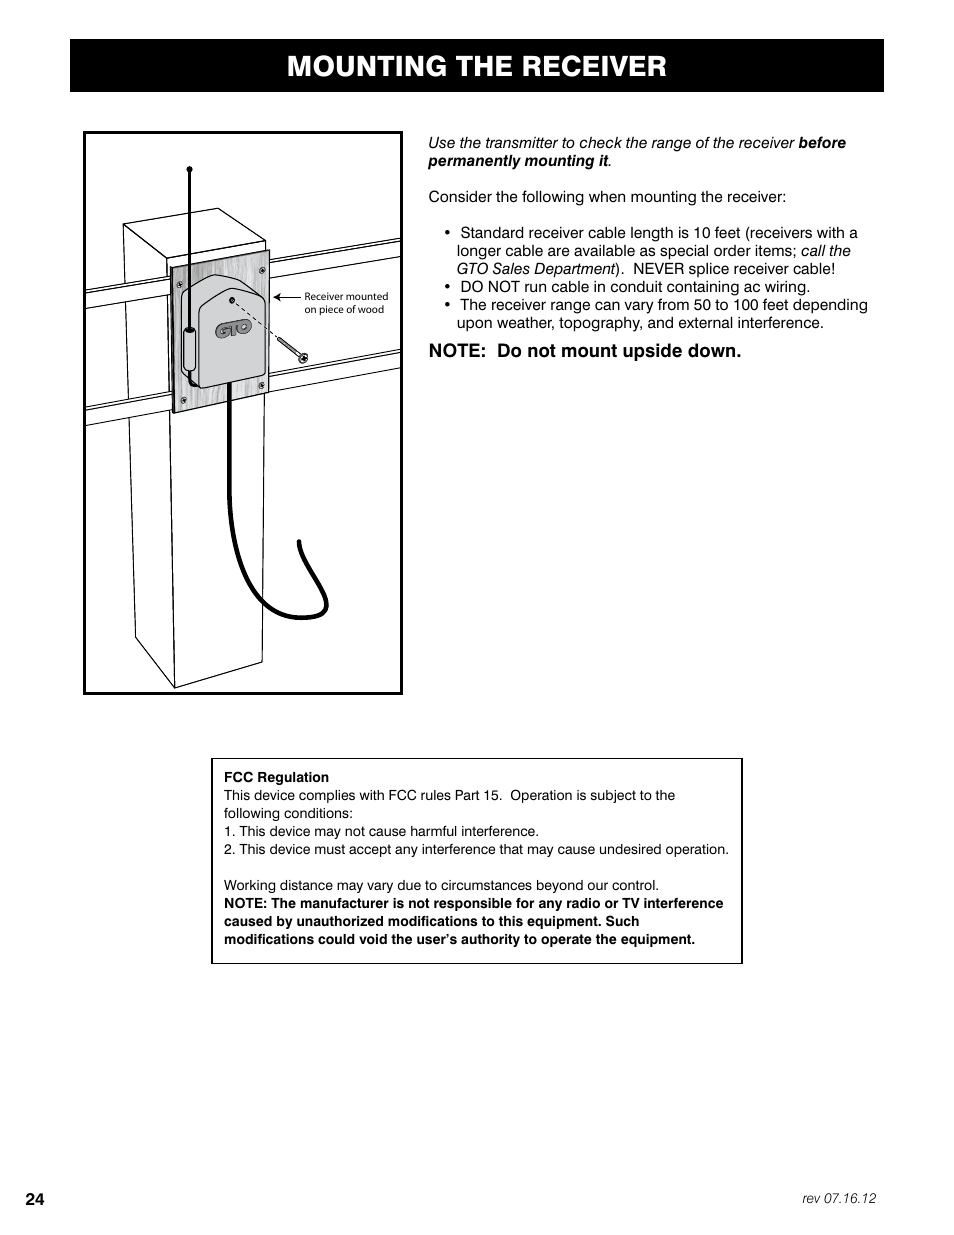 Fm 350 Wiring Diagram Schematics Engine Mounting The Receiver Mighty Mule Fm350 User Manual Page 28 44 Chevy